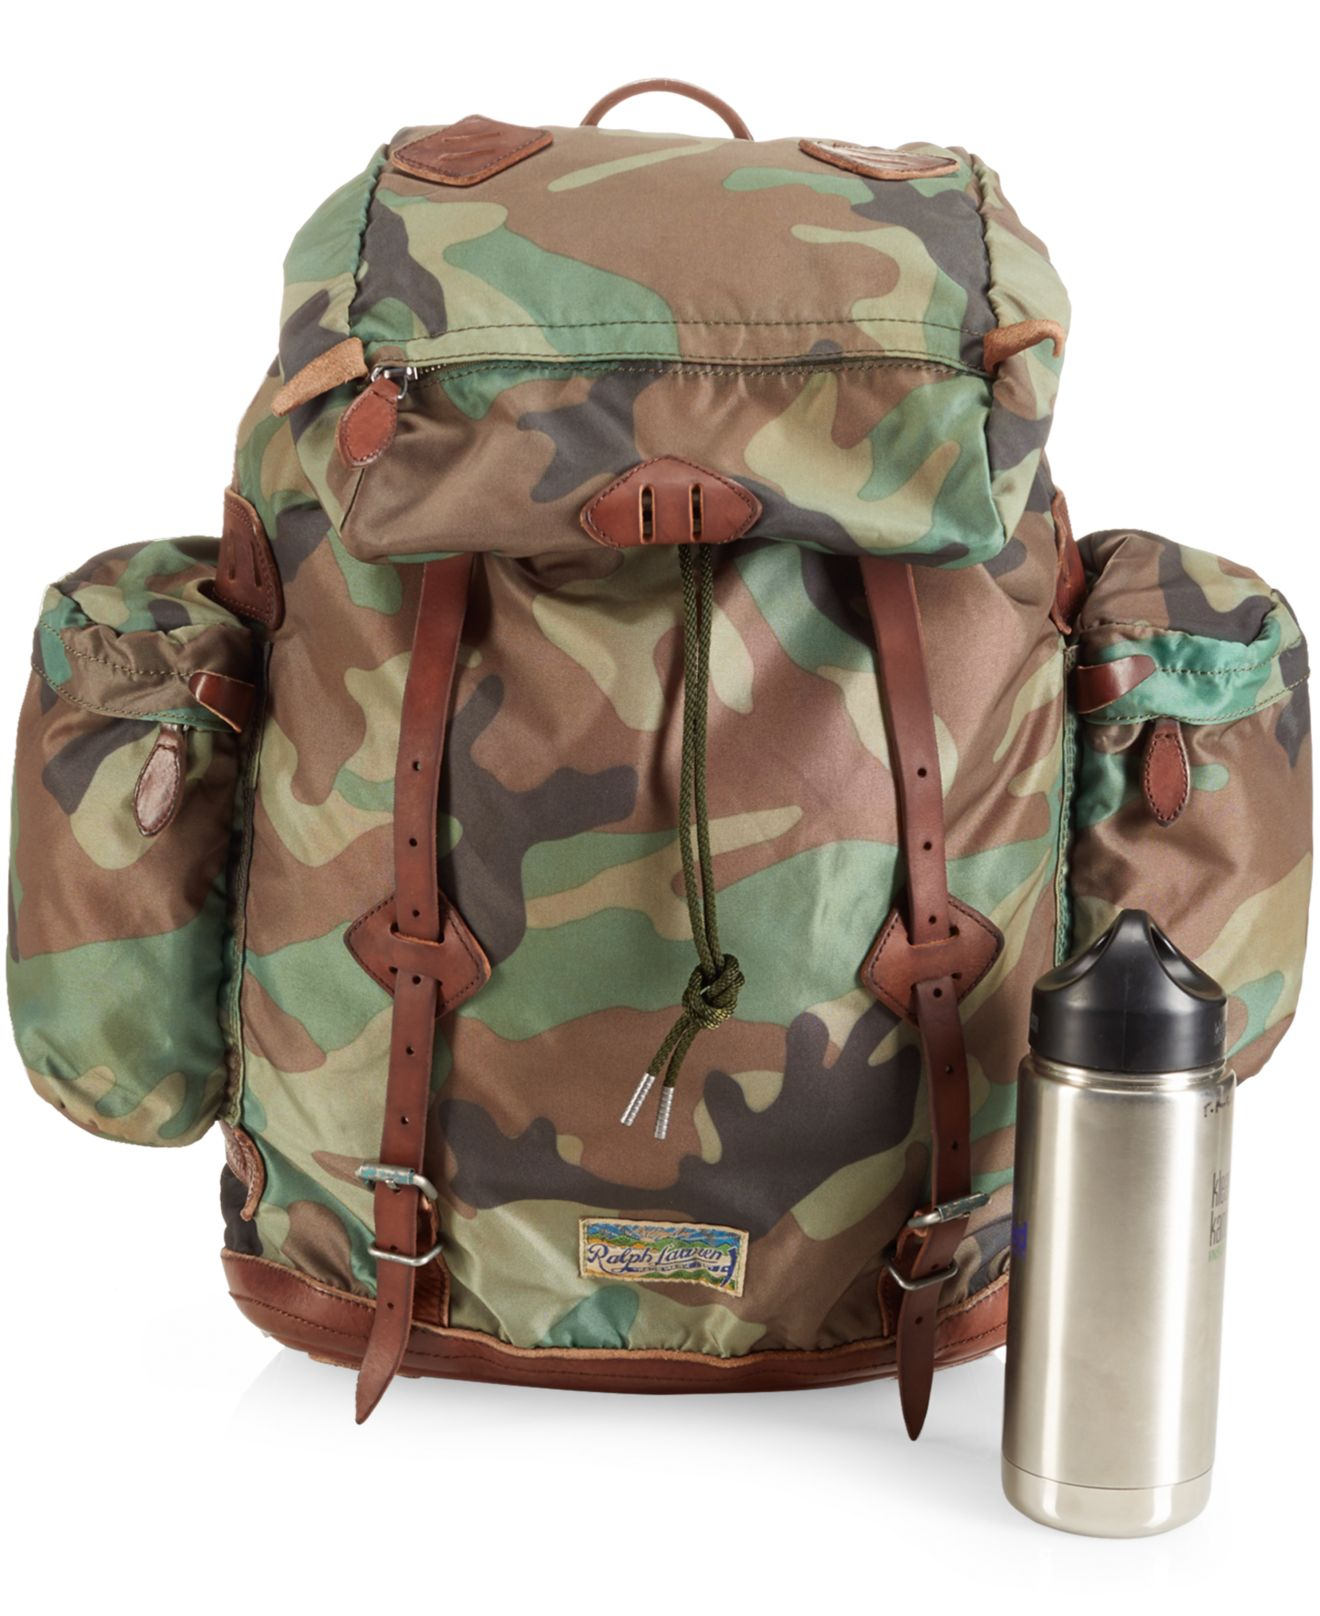 Lyst - Polo Ralph Lauren Yosemite Nylon Camo Backpack in Green for Men 4a3248fc2a3eb